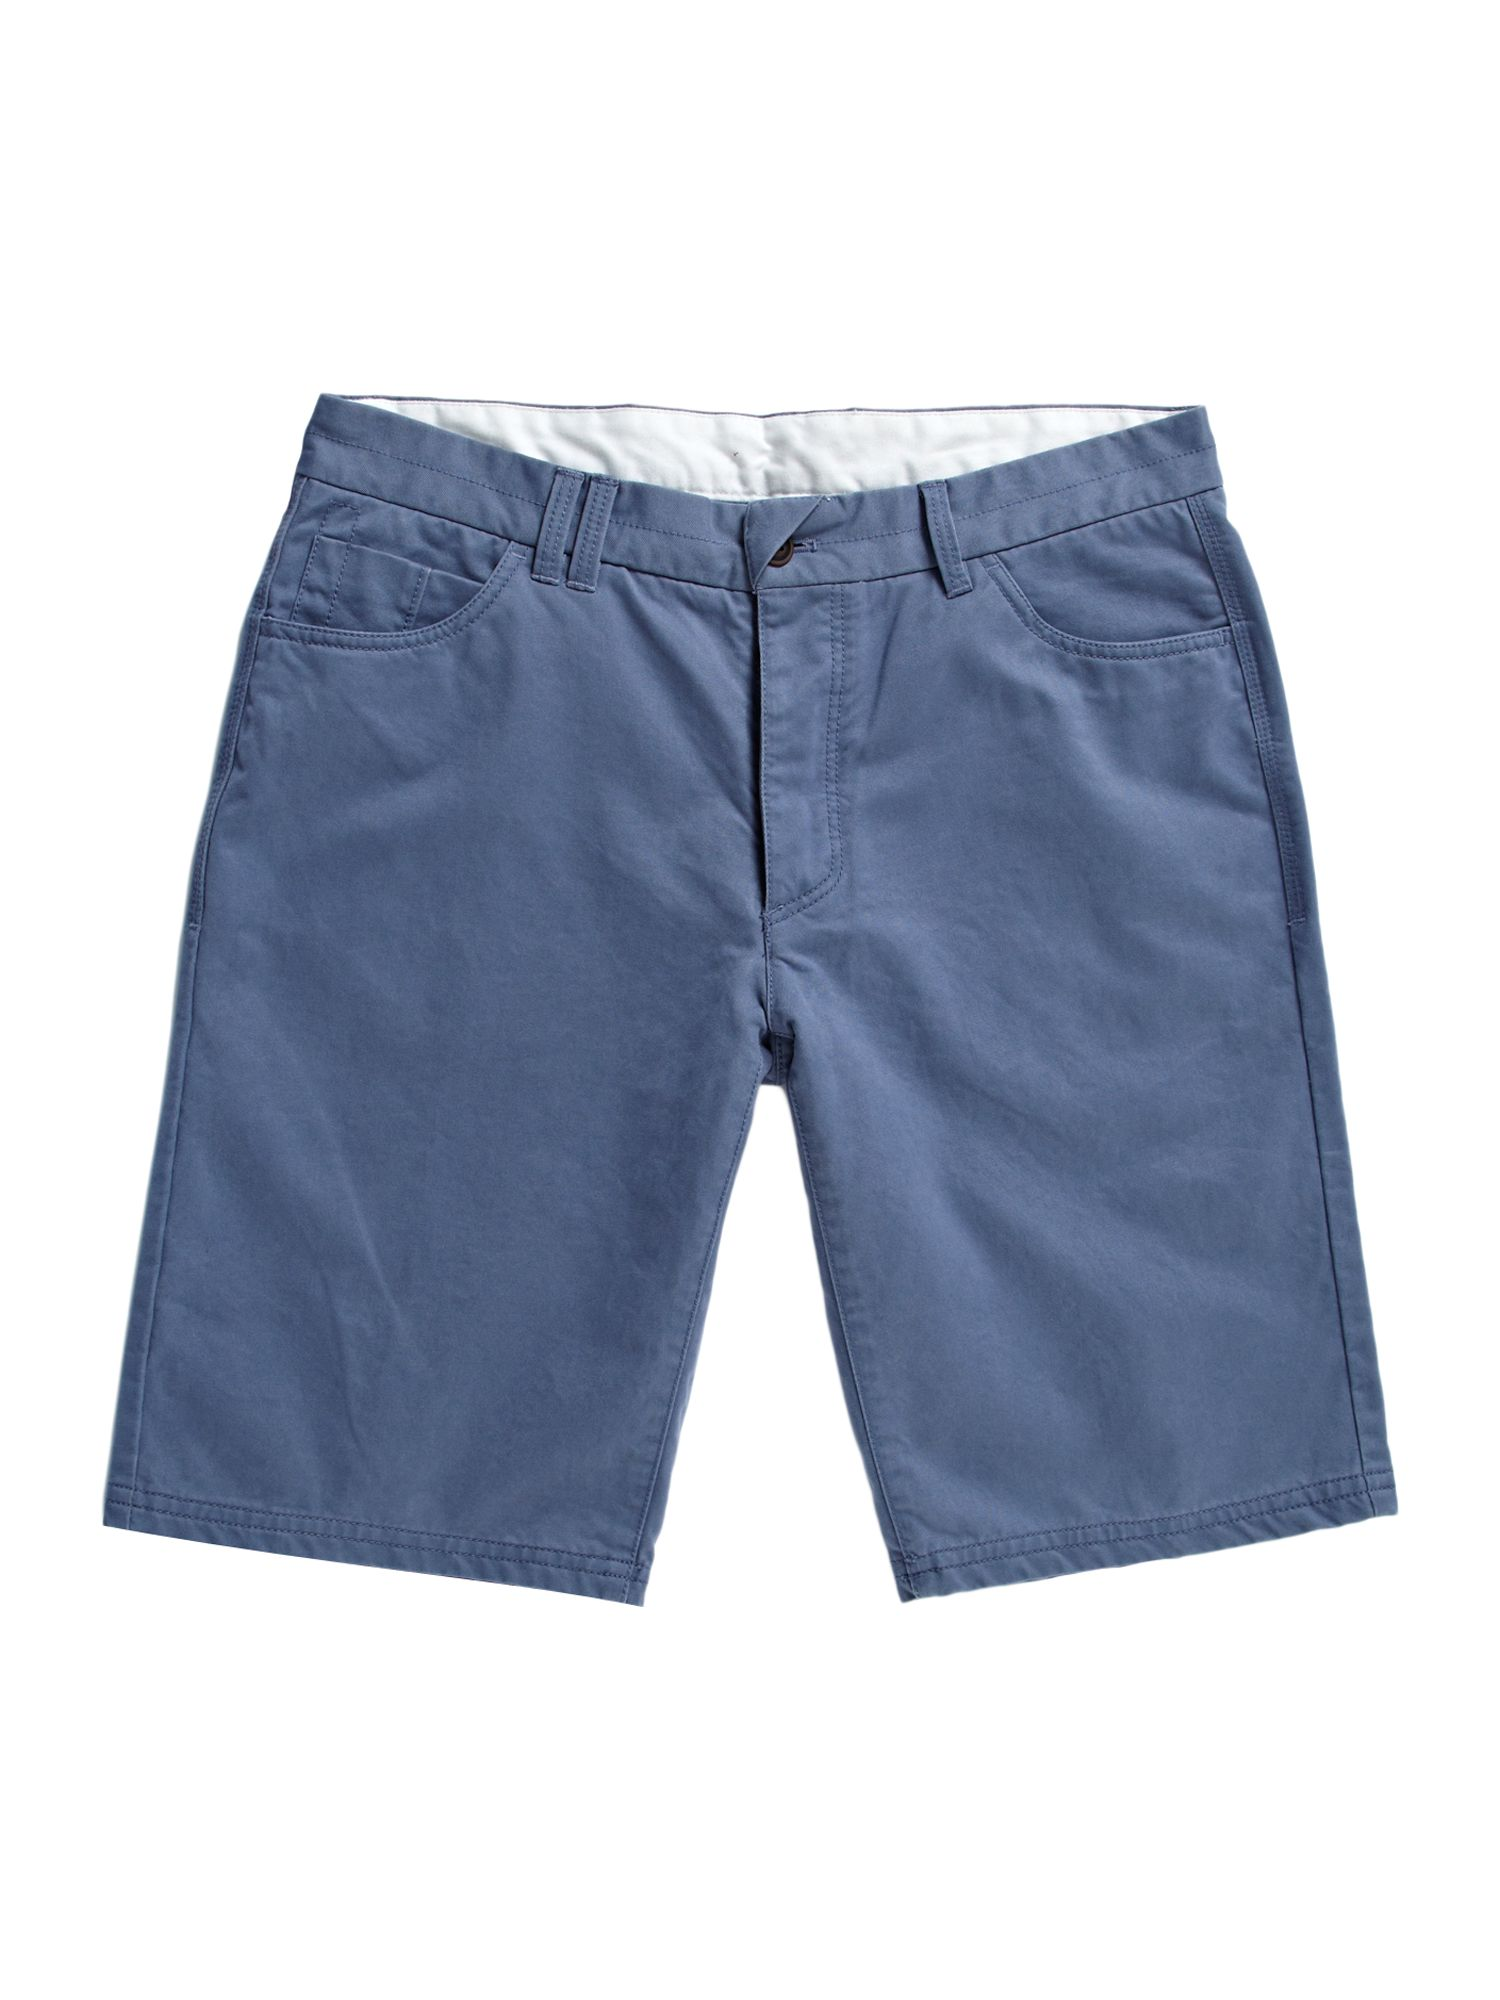 limited edition chino short